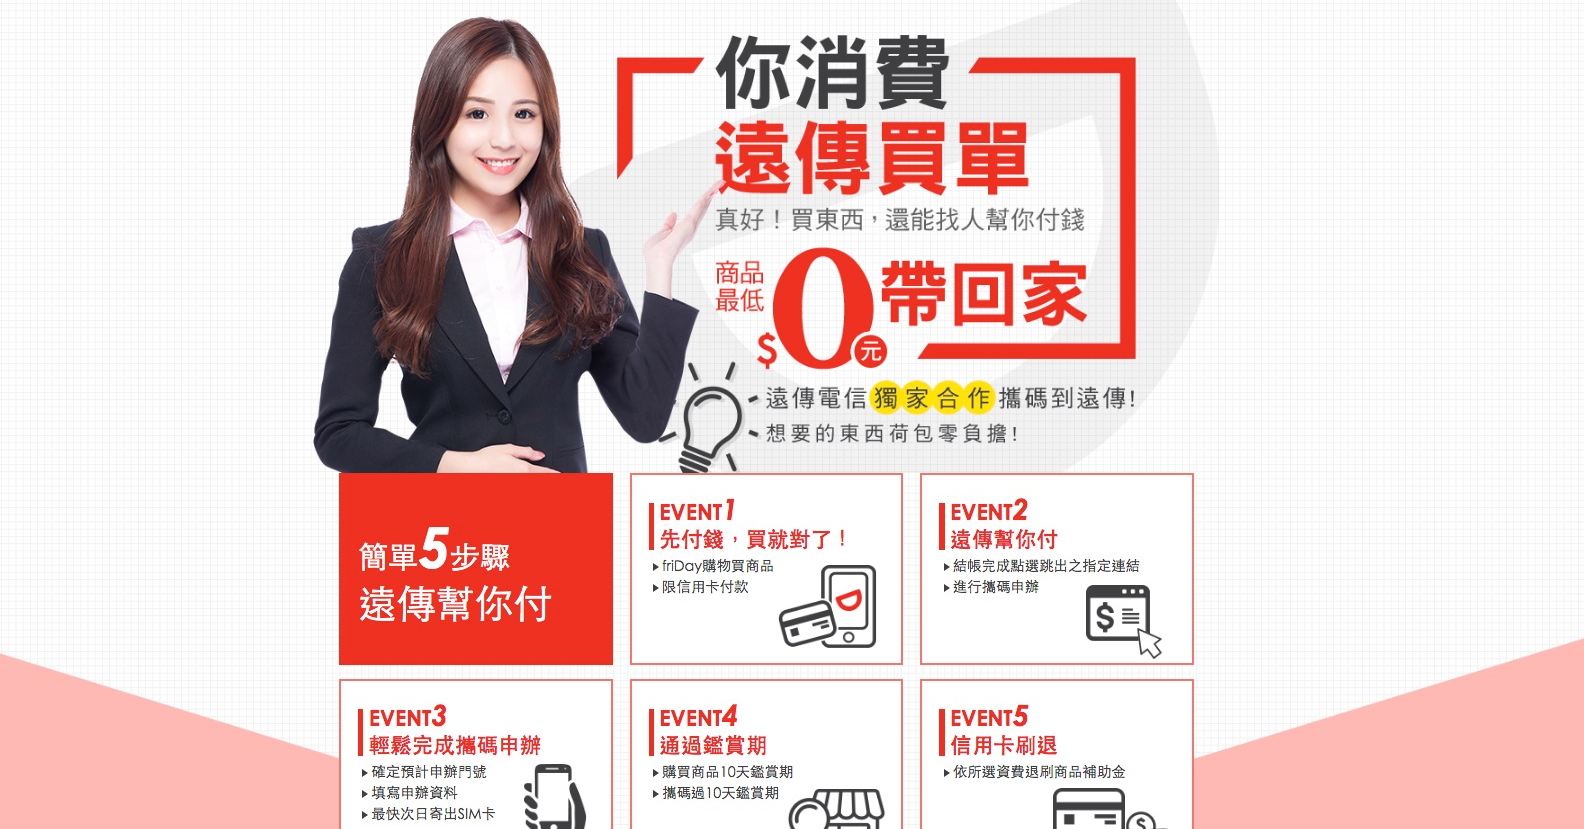 Display advertising, Poster, Advertising, Public Relations, Logo, Highway M02, Font, Brand, Business, Public, 阿 宅 你 已經 死, Font, Advertising, Brand